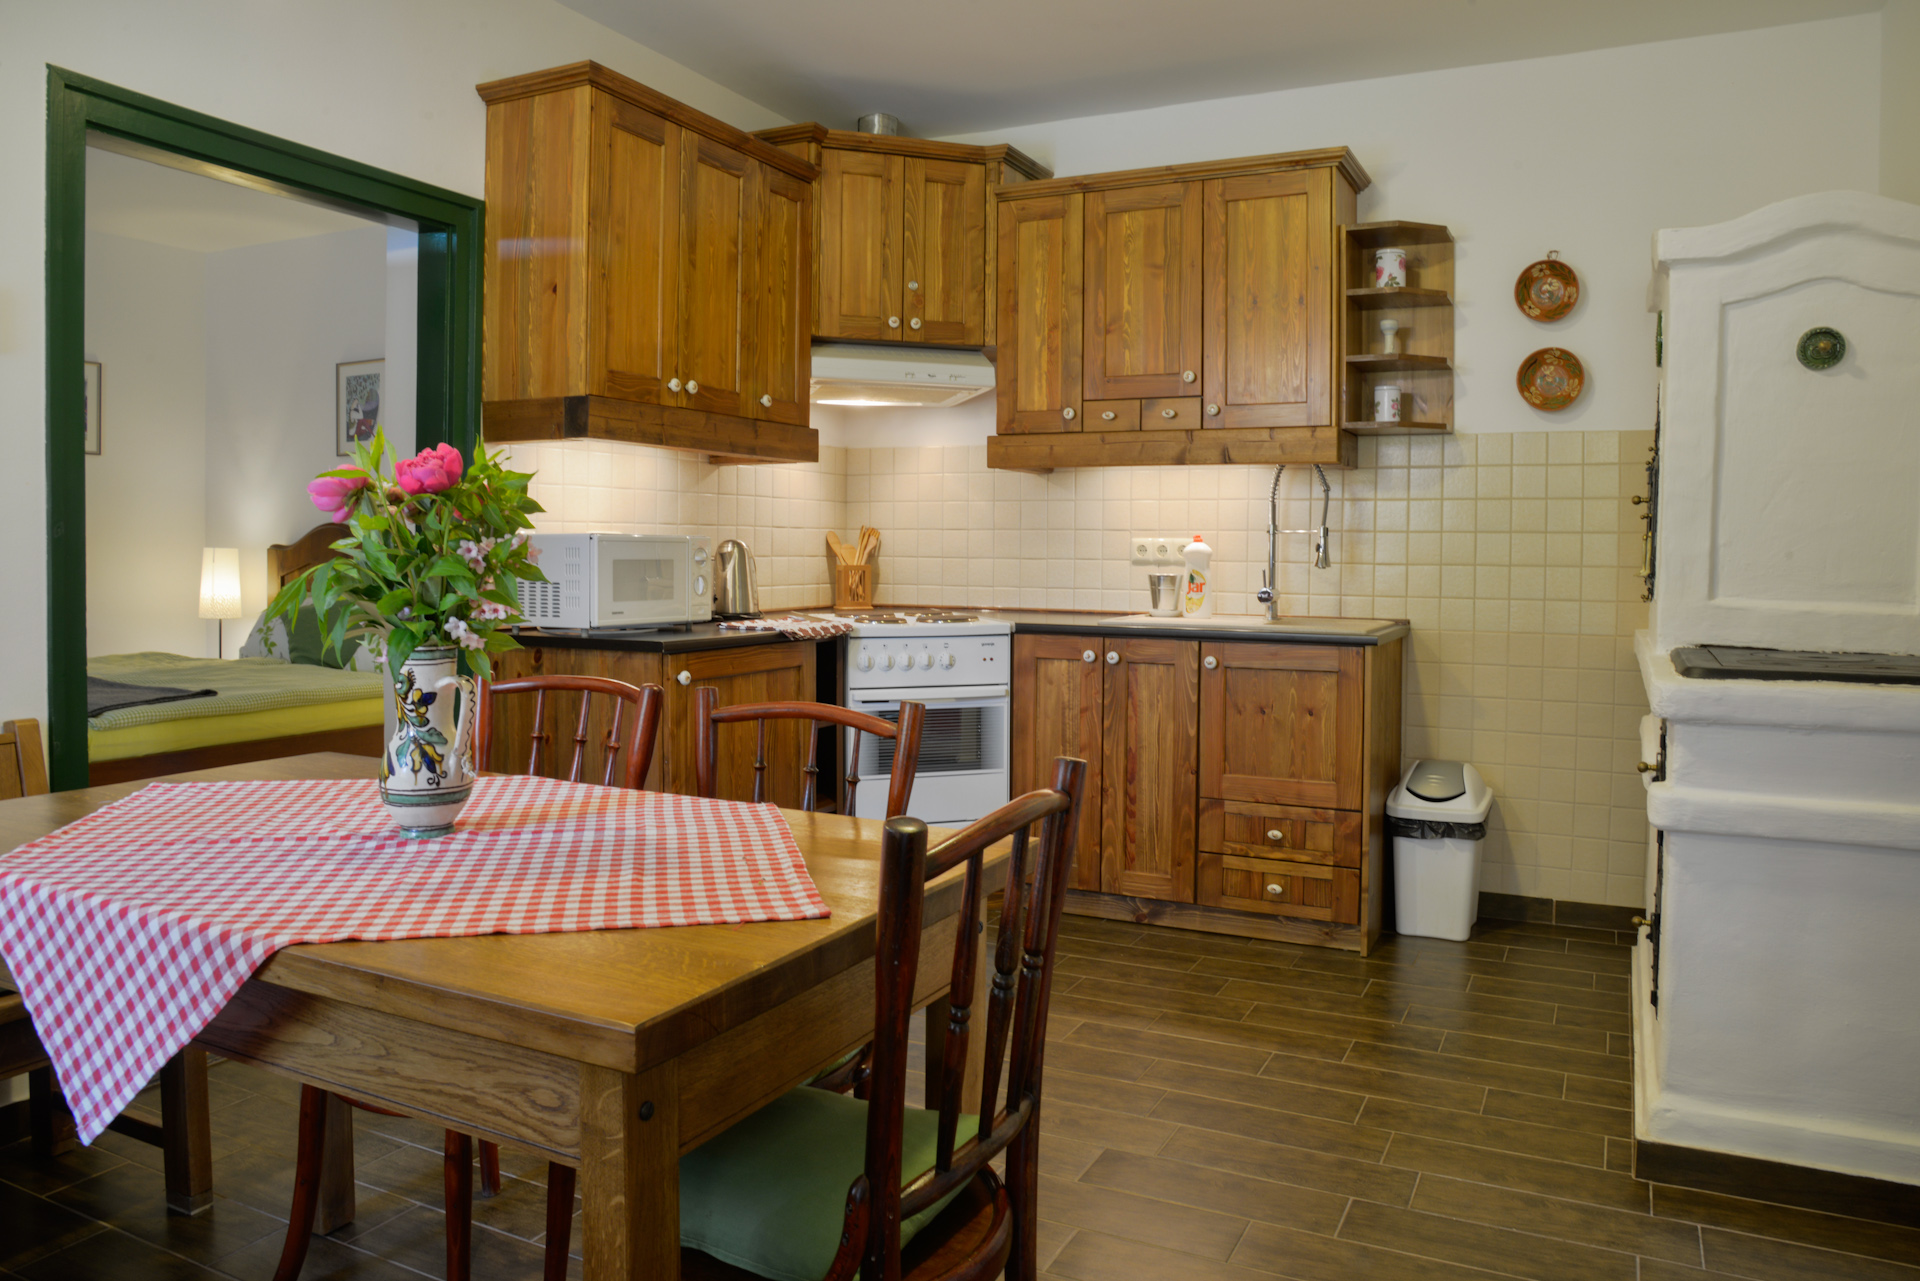 Körtefa vendégház konyha/ Pear Tree Cottage kitchen